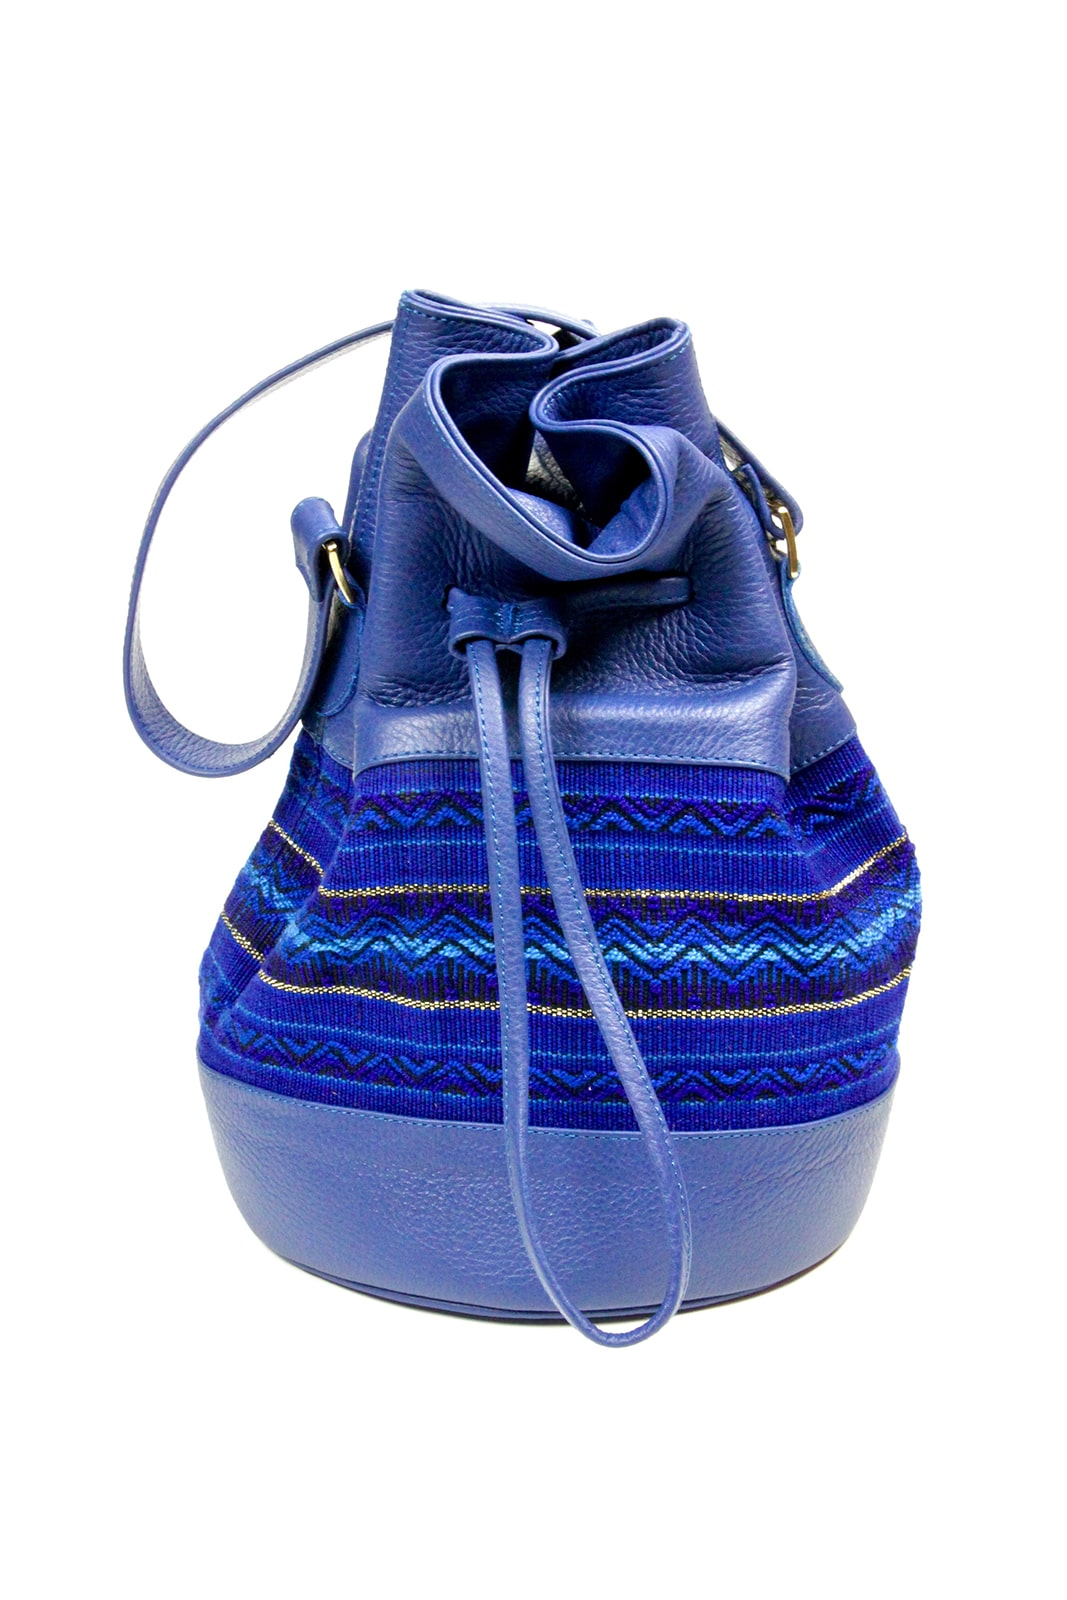 Collection printemps ete 2019 – Sac seau bleu royal – Yacana